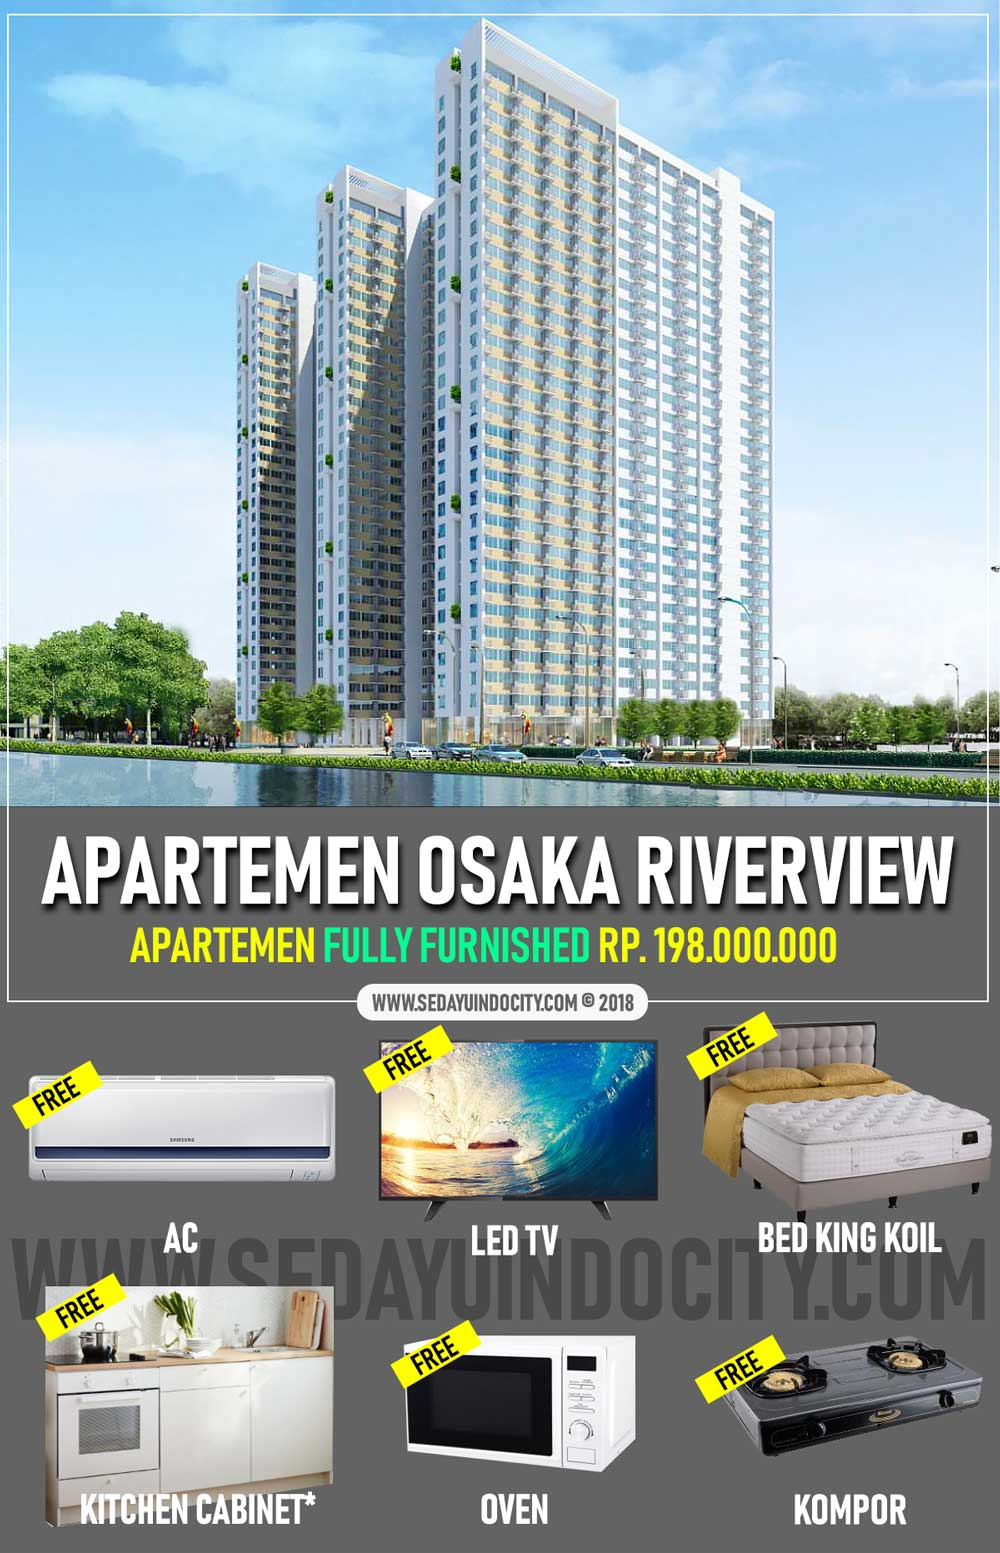 Tampilan Osaka Riverview